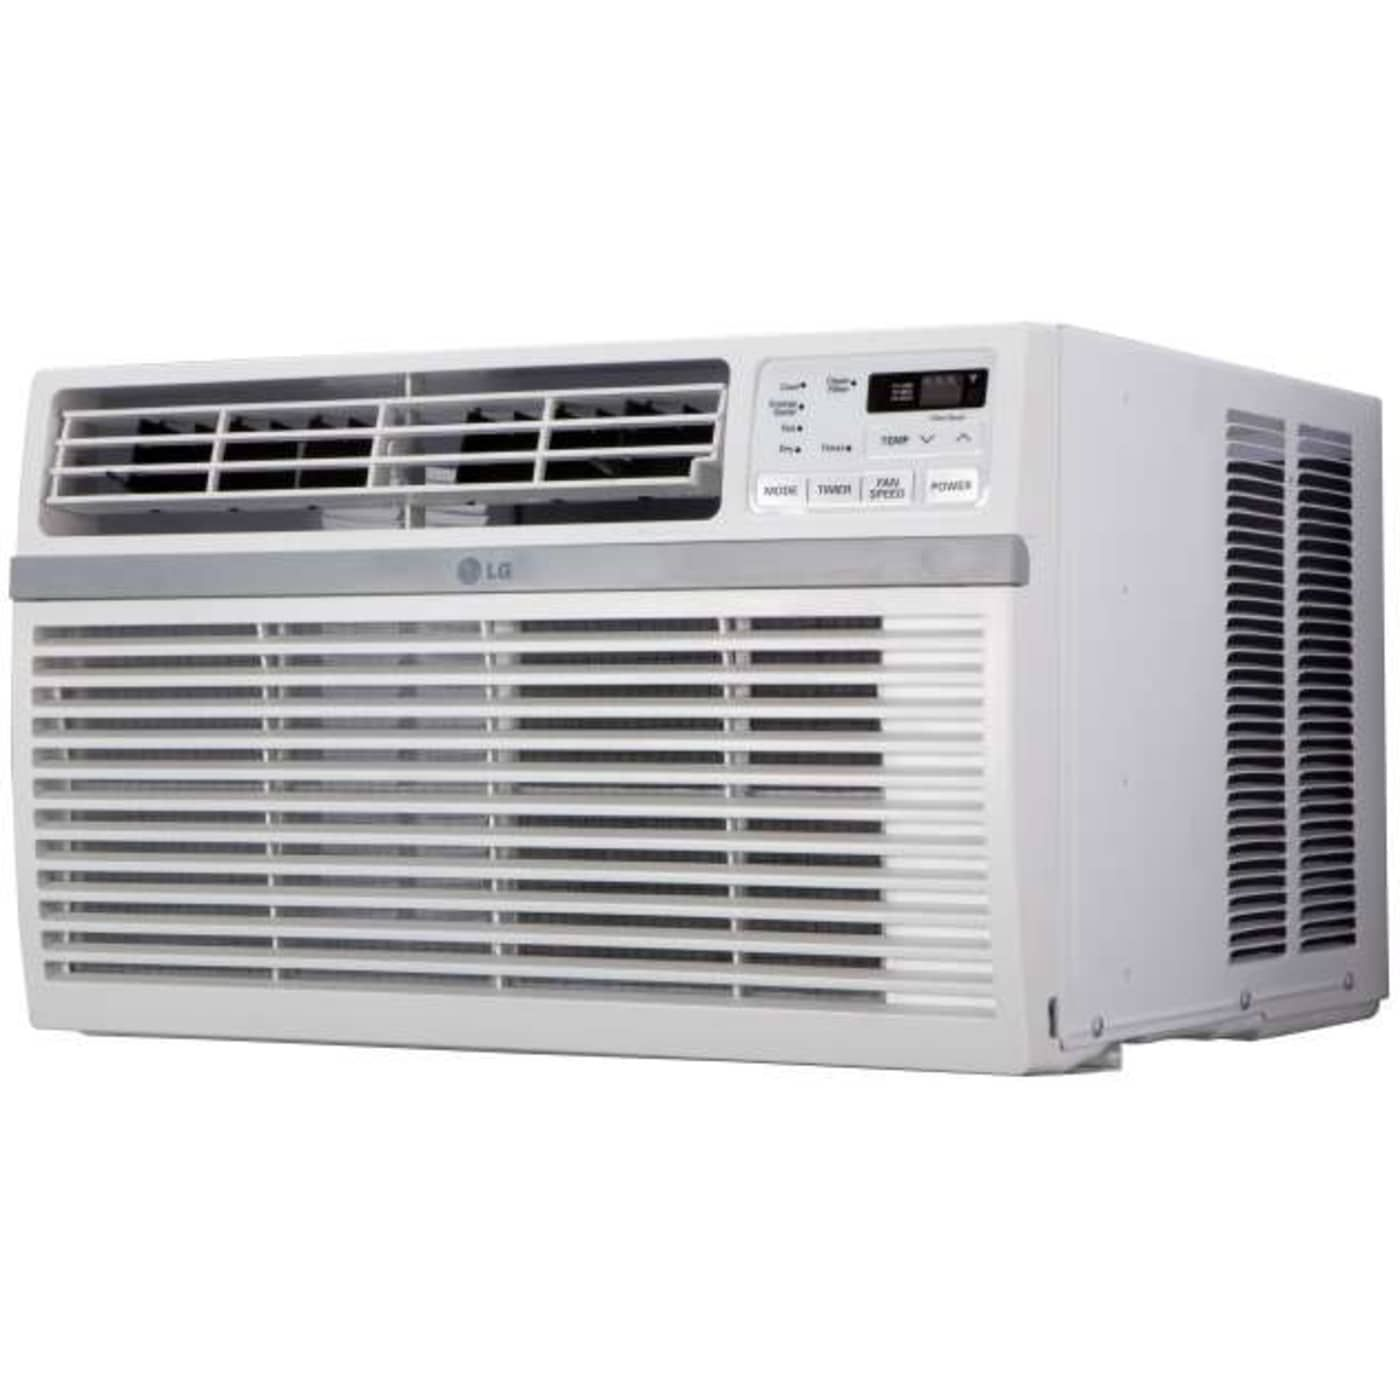 Lw2516er By Lg Air Conditioners Goedekers Com Window Air Conditioner Air Conditioning System Windows